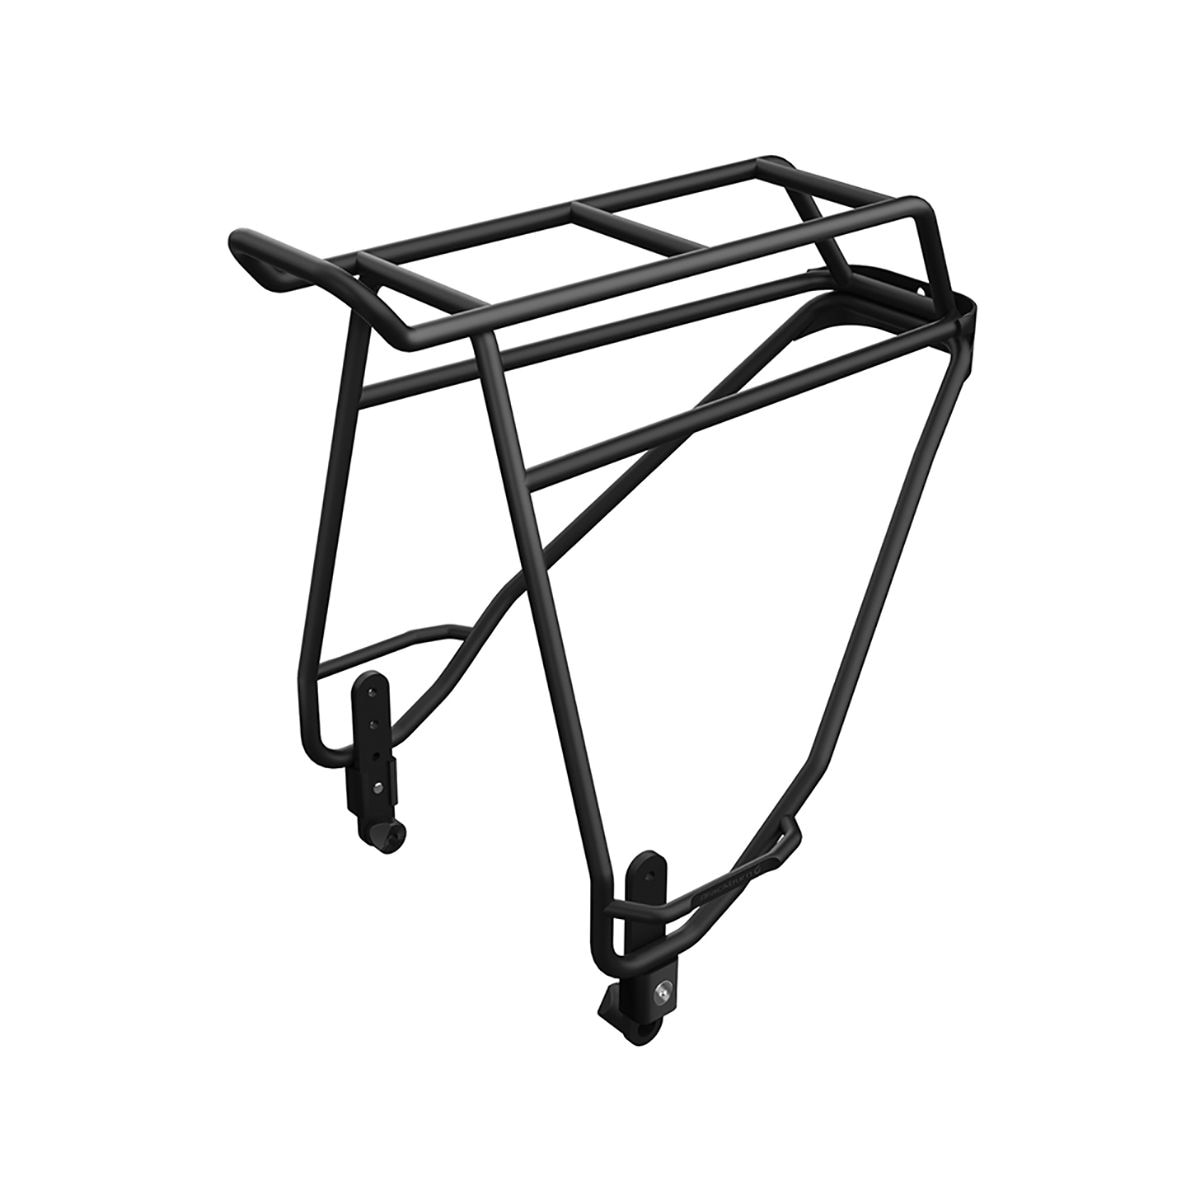 Blackburn Outpost Rear World Touring Rack